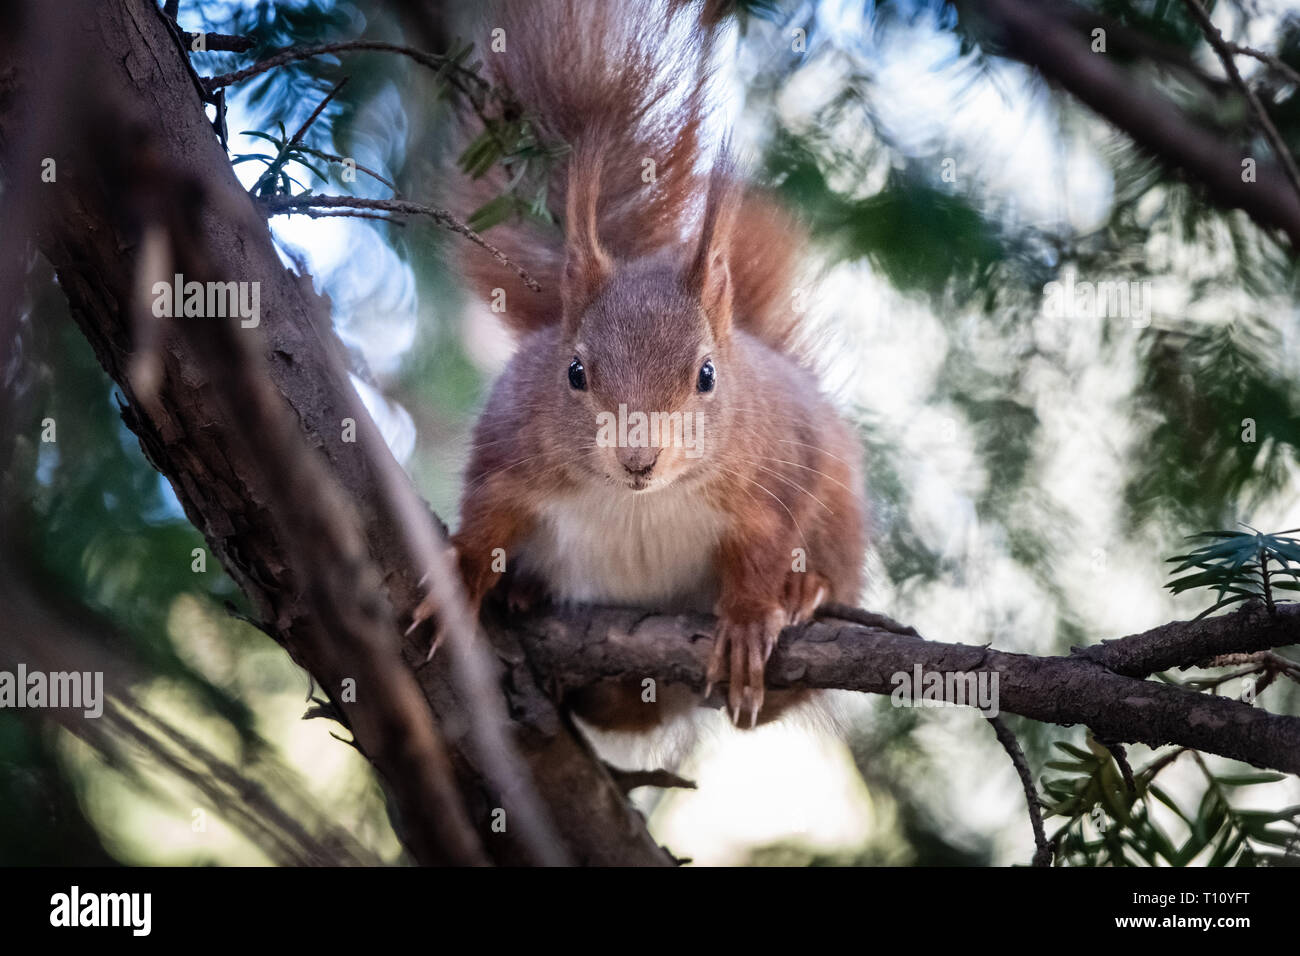 squirrel in a tree - Stock Image